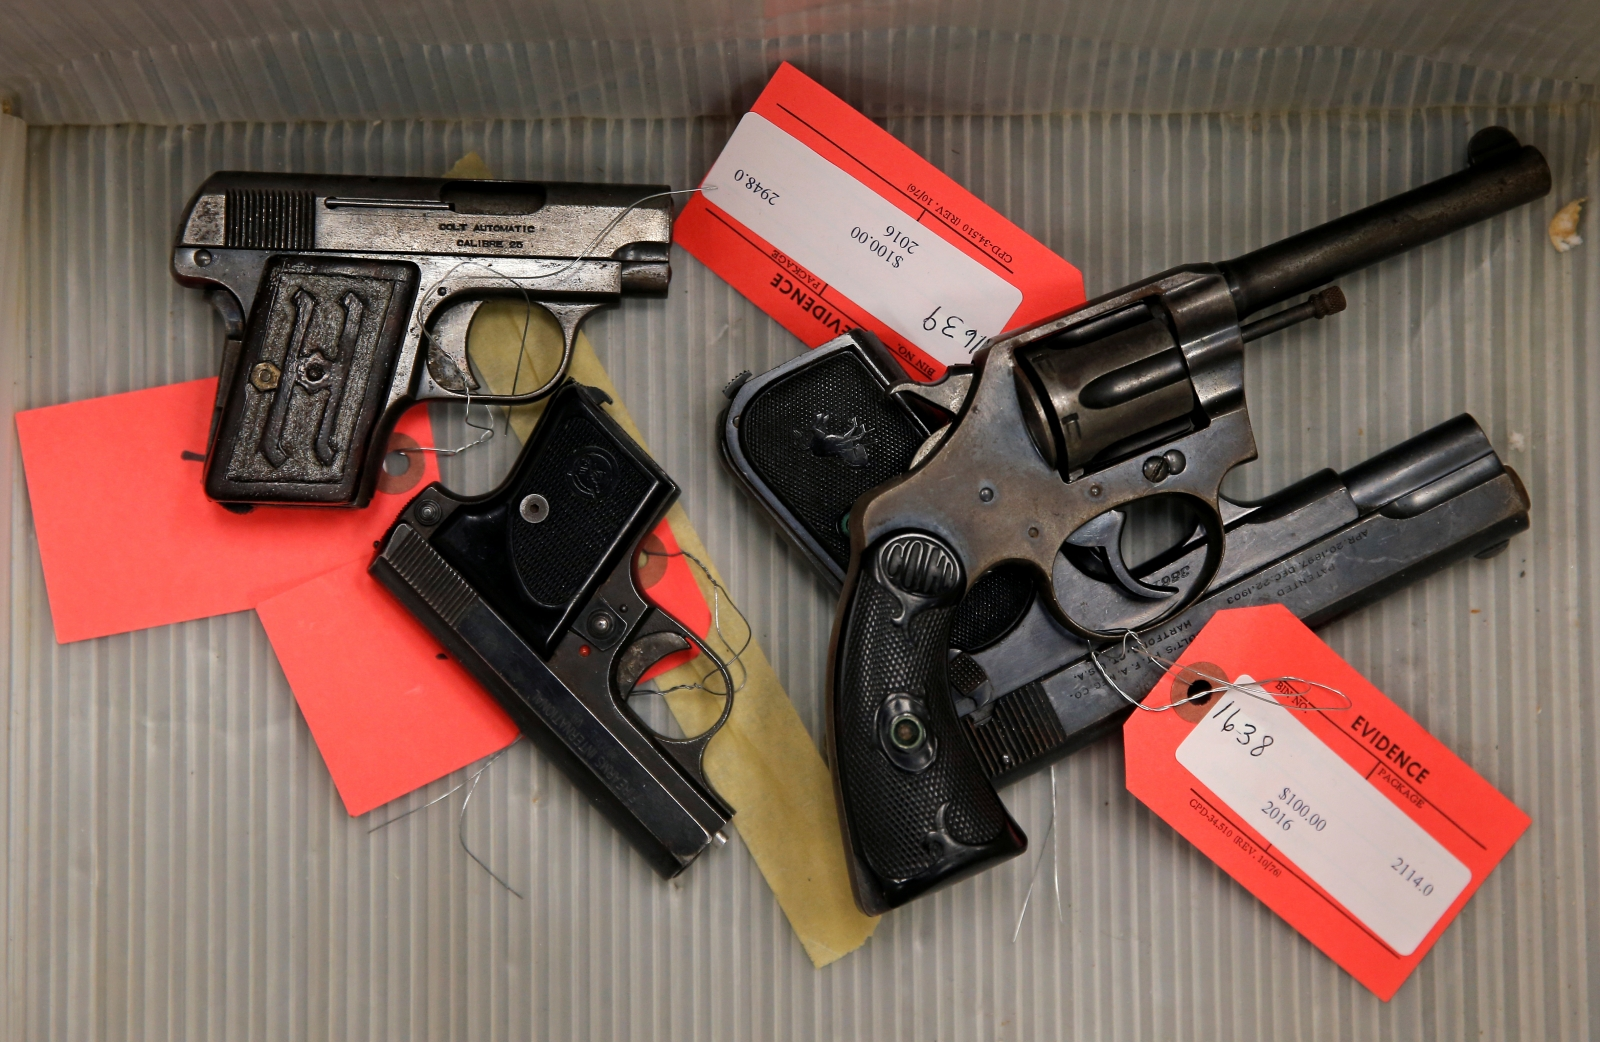 gun law research From gun kits to 3d printable guns, a short history of rogue gun makers timothy d lytton , georgia state university since the 1980s, anyone can purchase firearms without legal restrictions, in.